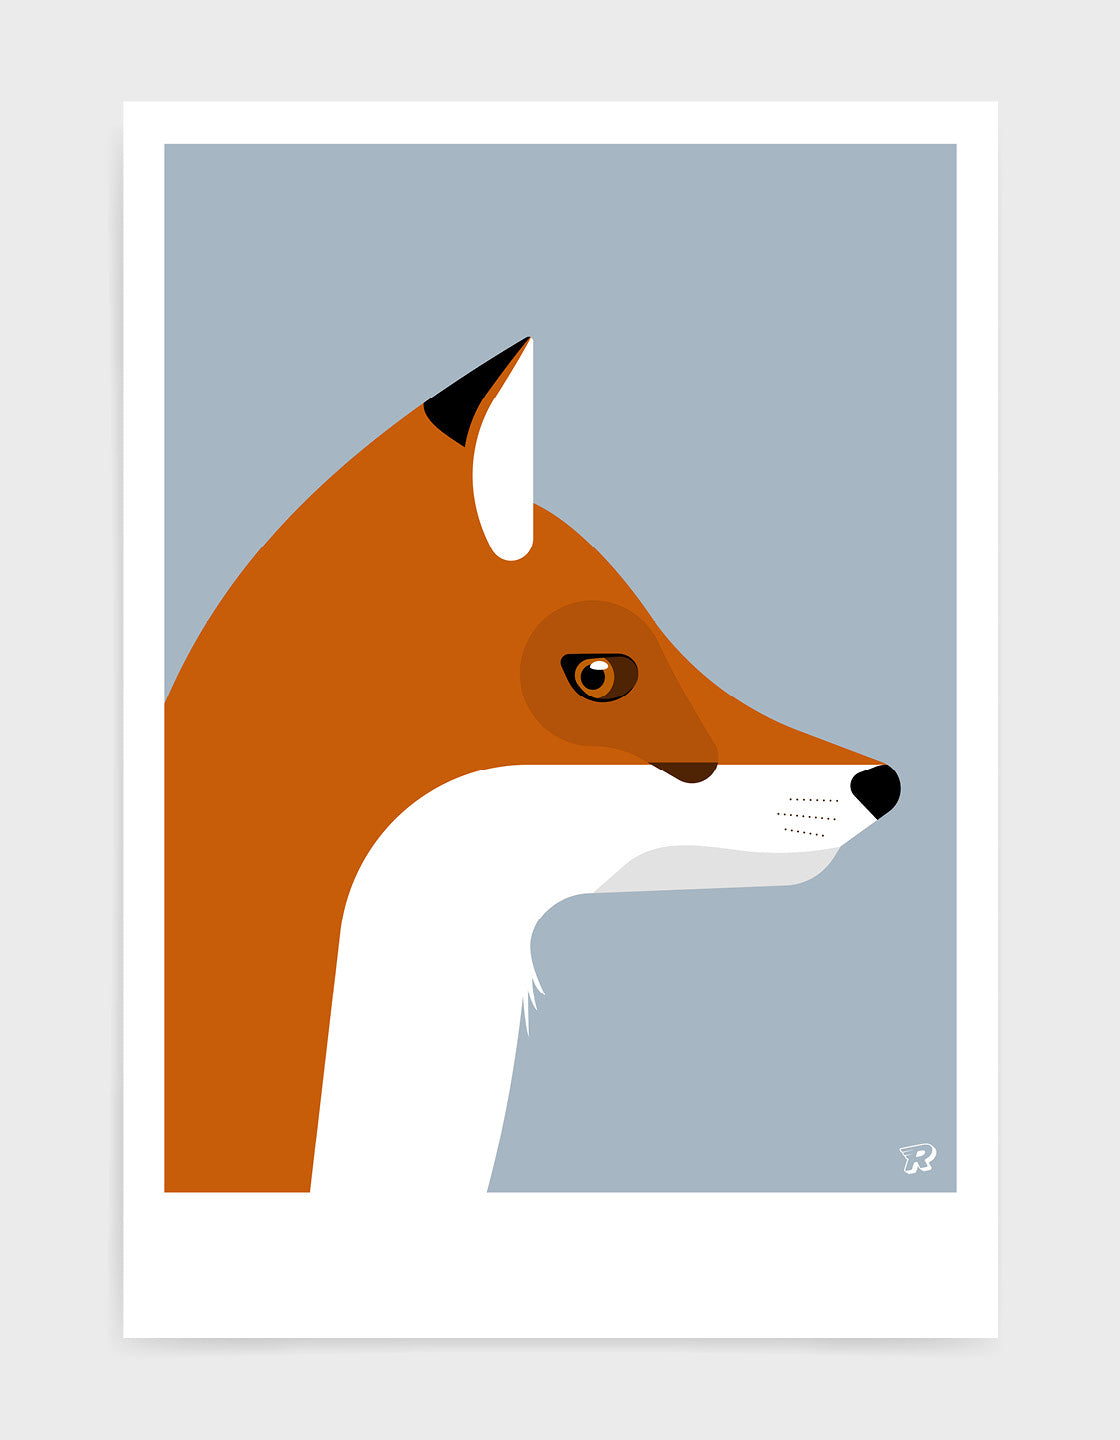 Illustration of a foxes head in profile against a light grey background